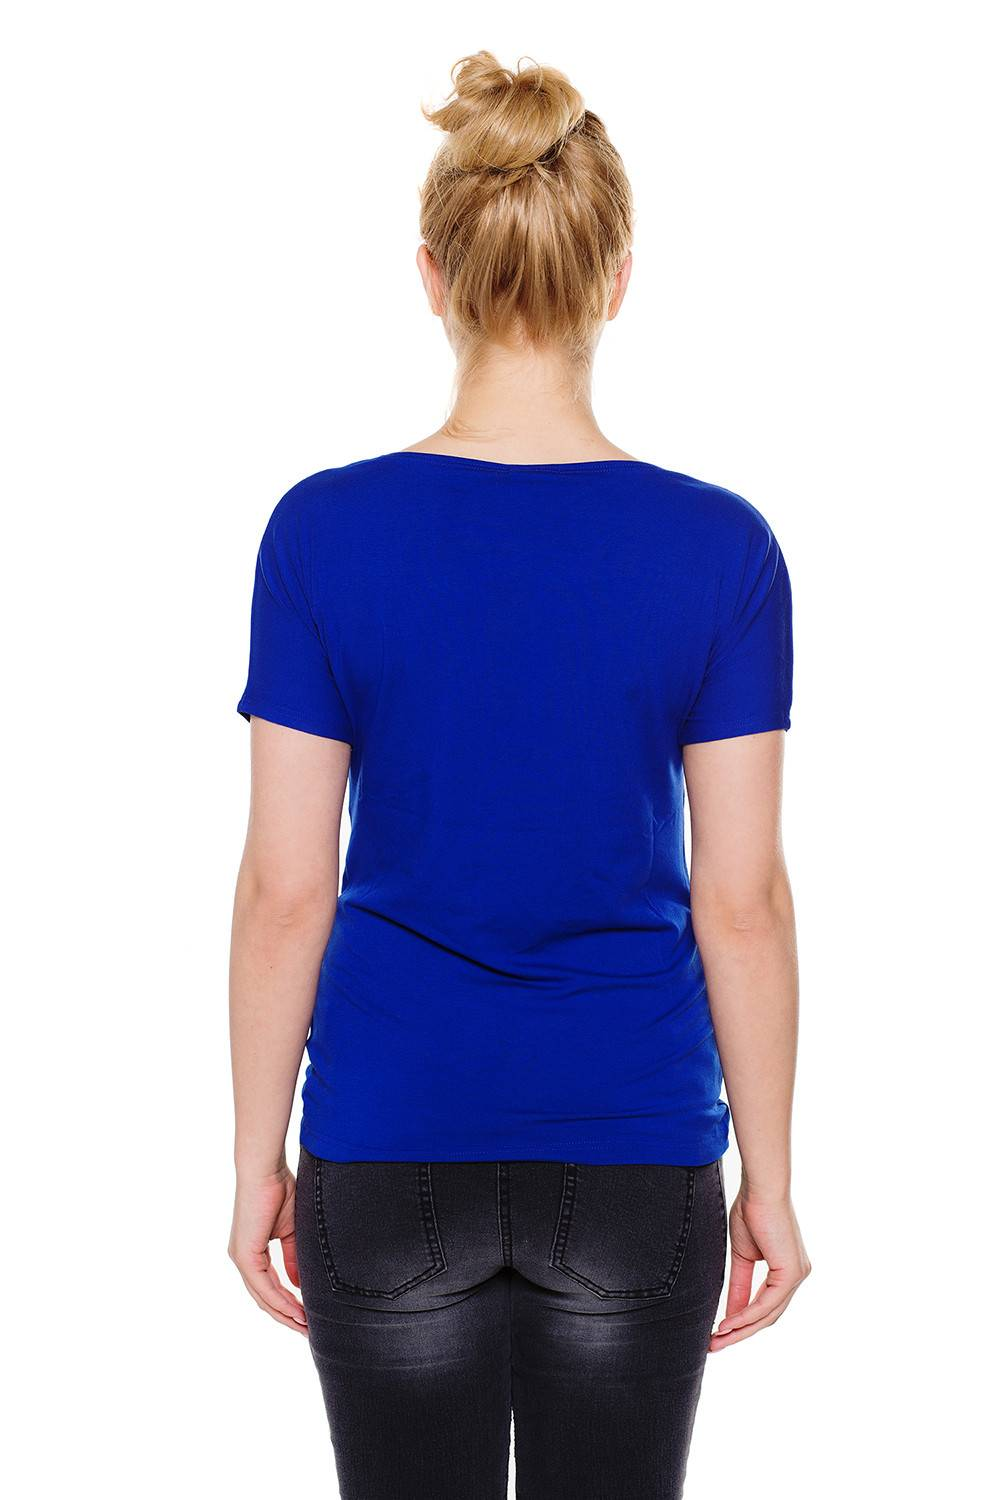 Wrap nursing top royal blue - Maternity top